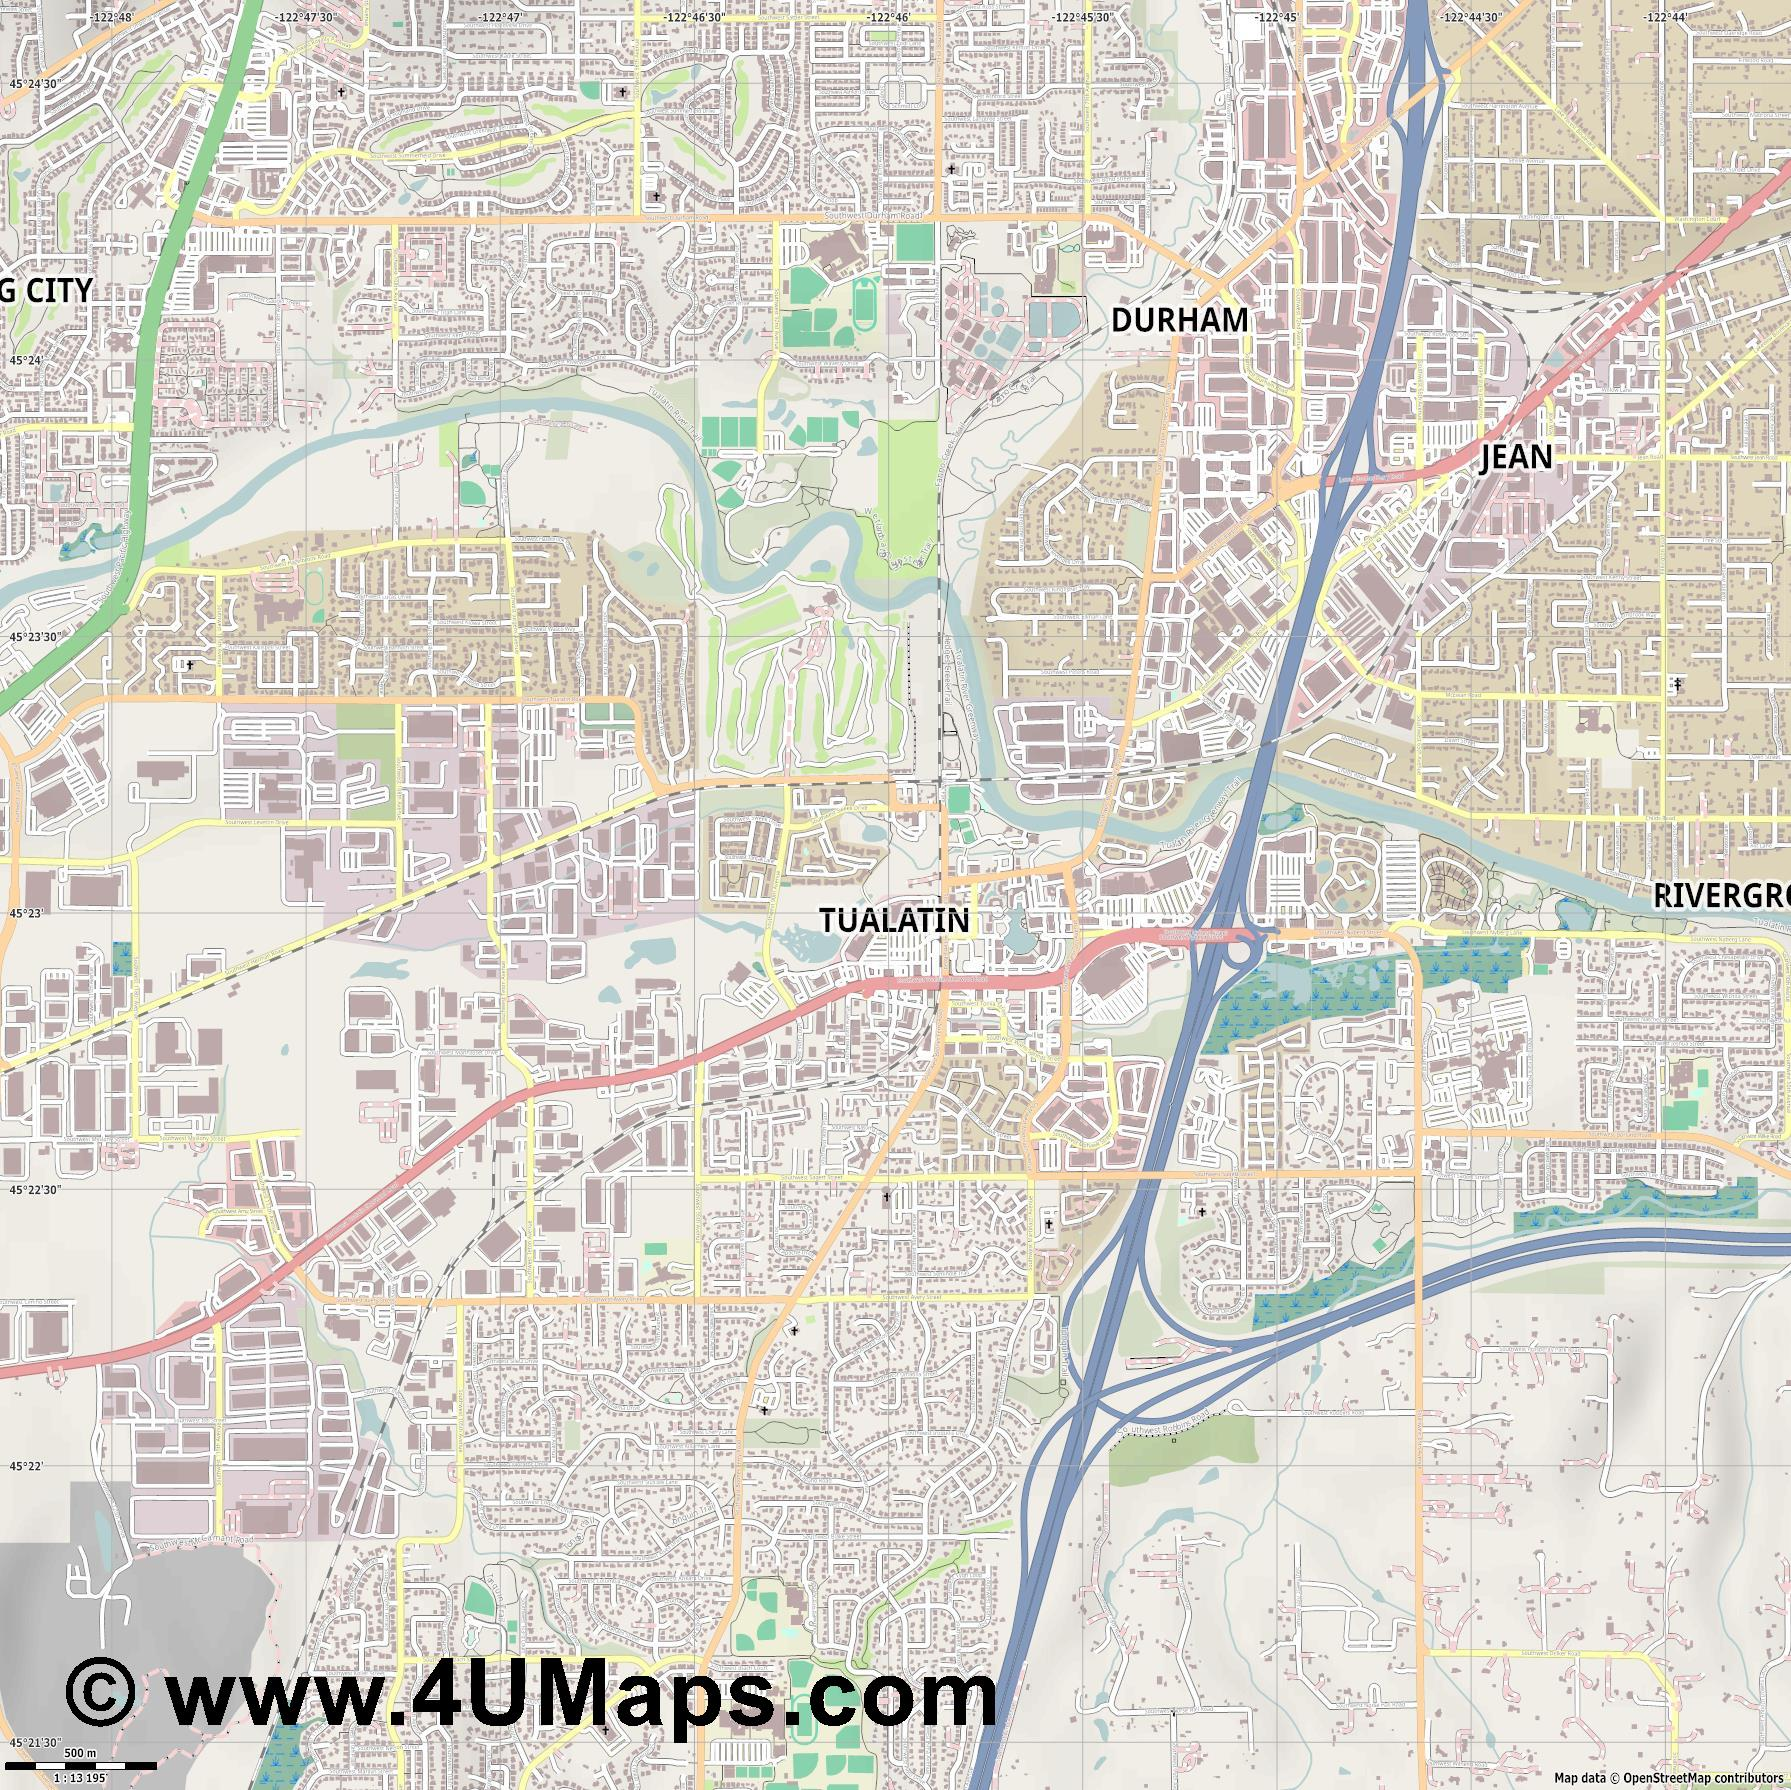 Tualatin  jpg ultra high detail preview vector city map